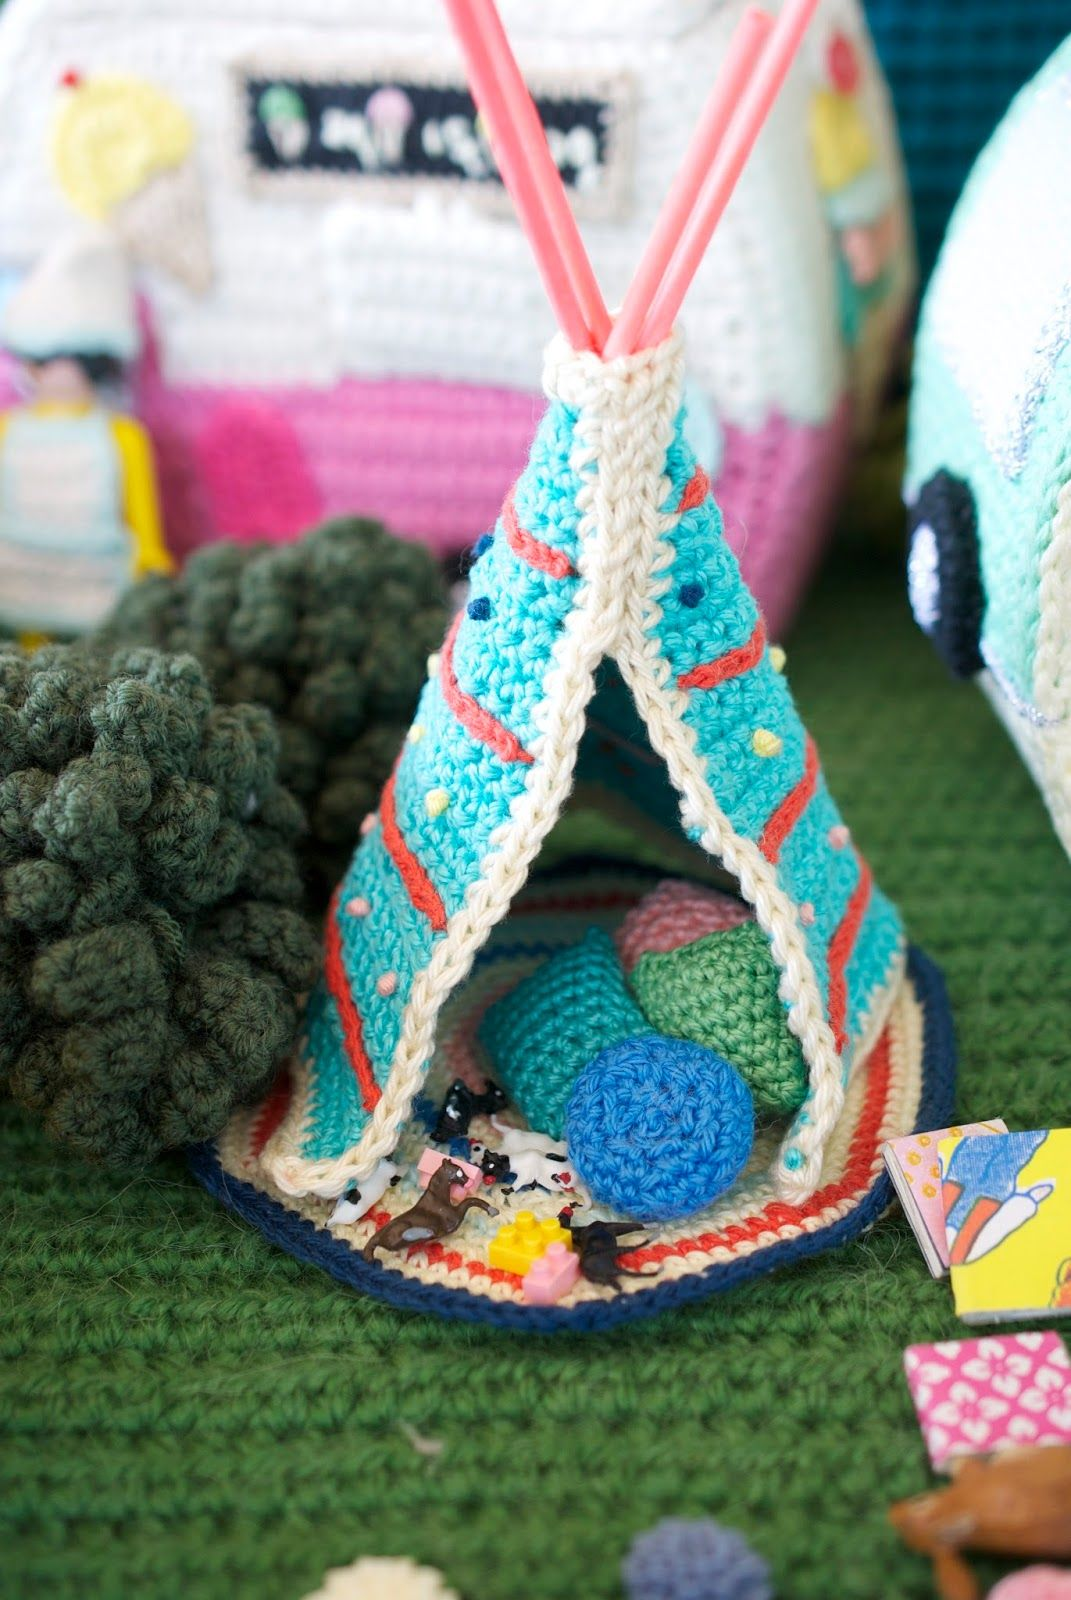 Here is a photo taken of the teepee for Let's Go Camping! Crochet Your Own  Adventure before everything was parcelled up and sent off t.